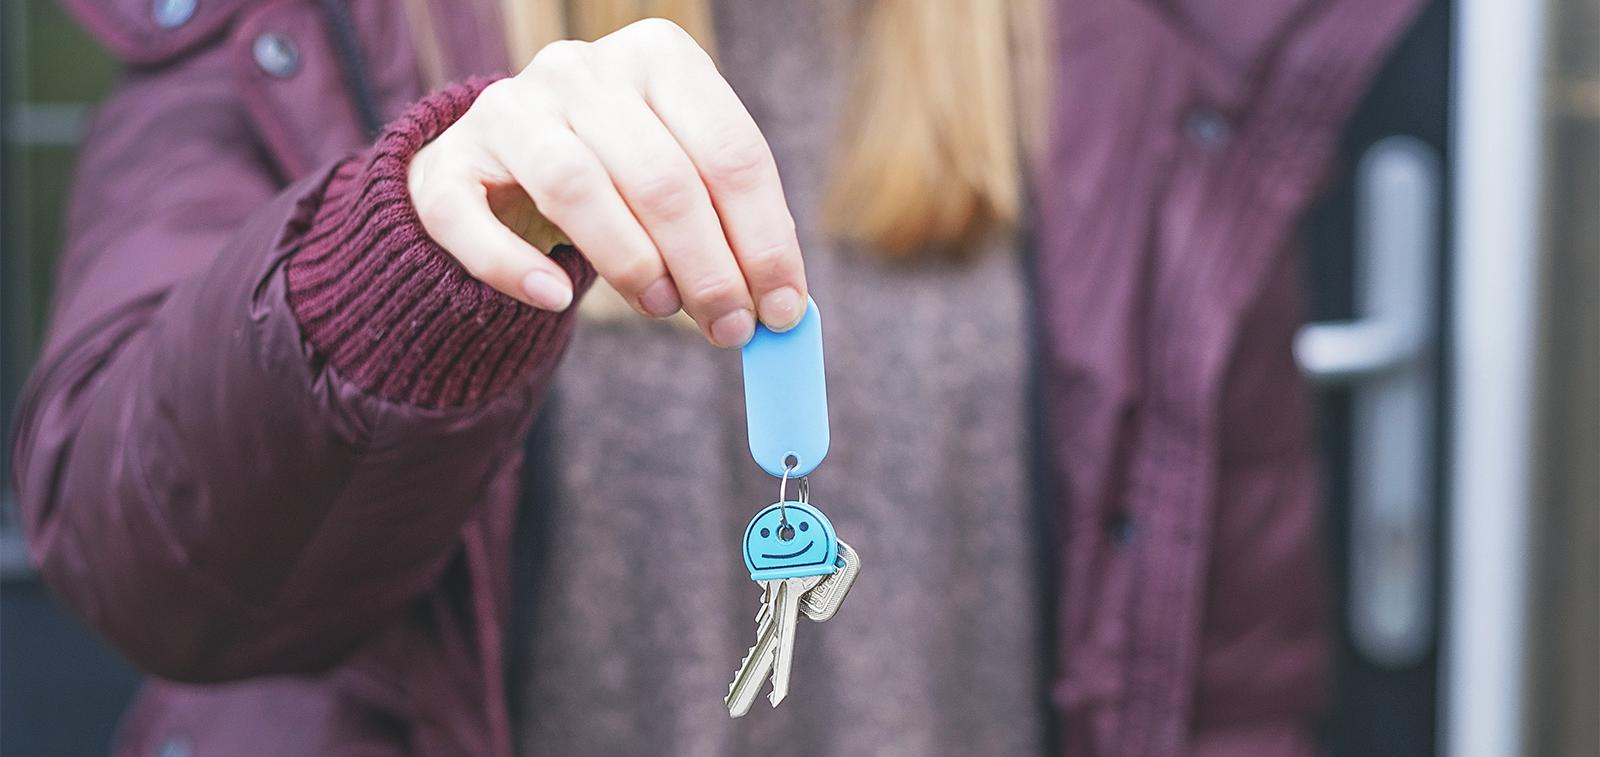 First time buyer holding the keys to their new home.